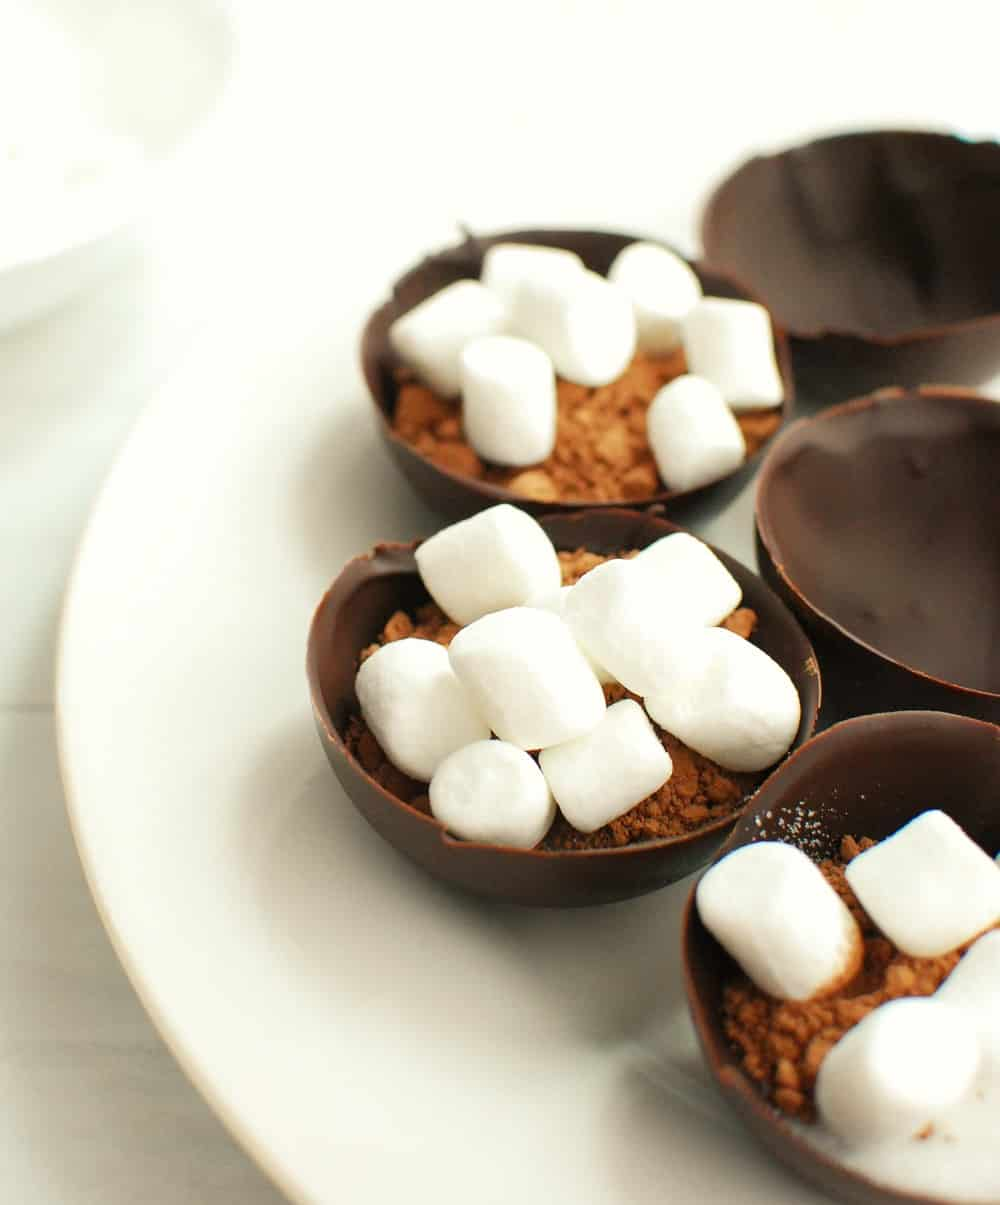 chocolate half circles filled with cocoa, sugar, and mini marshmallows